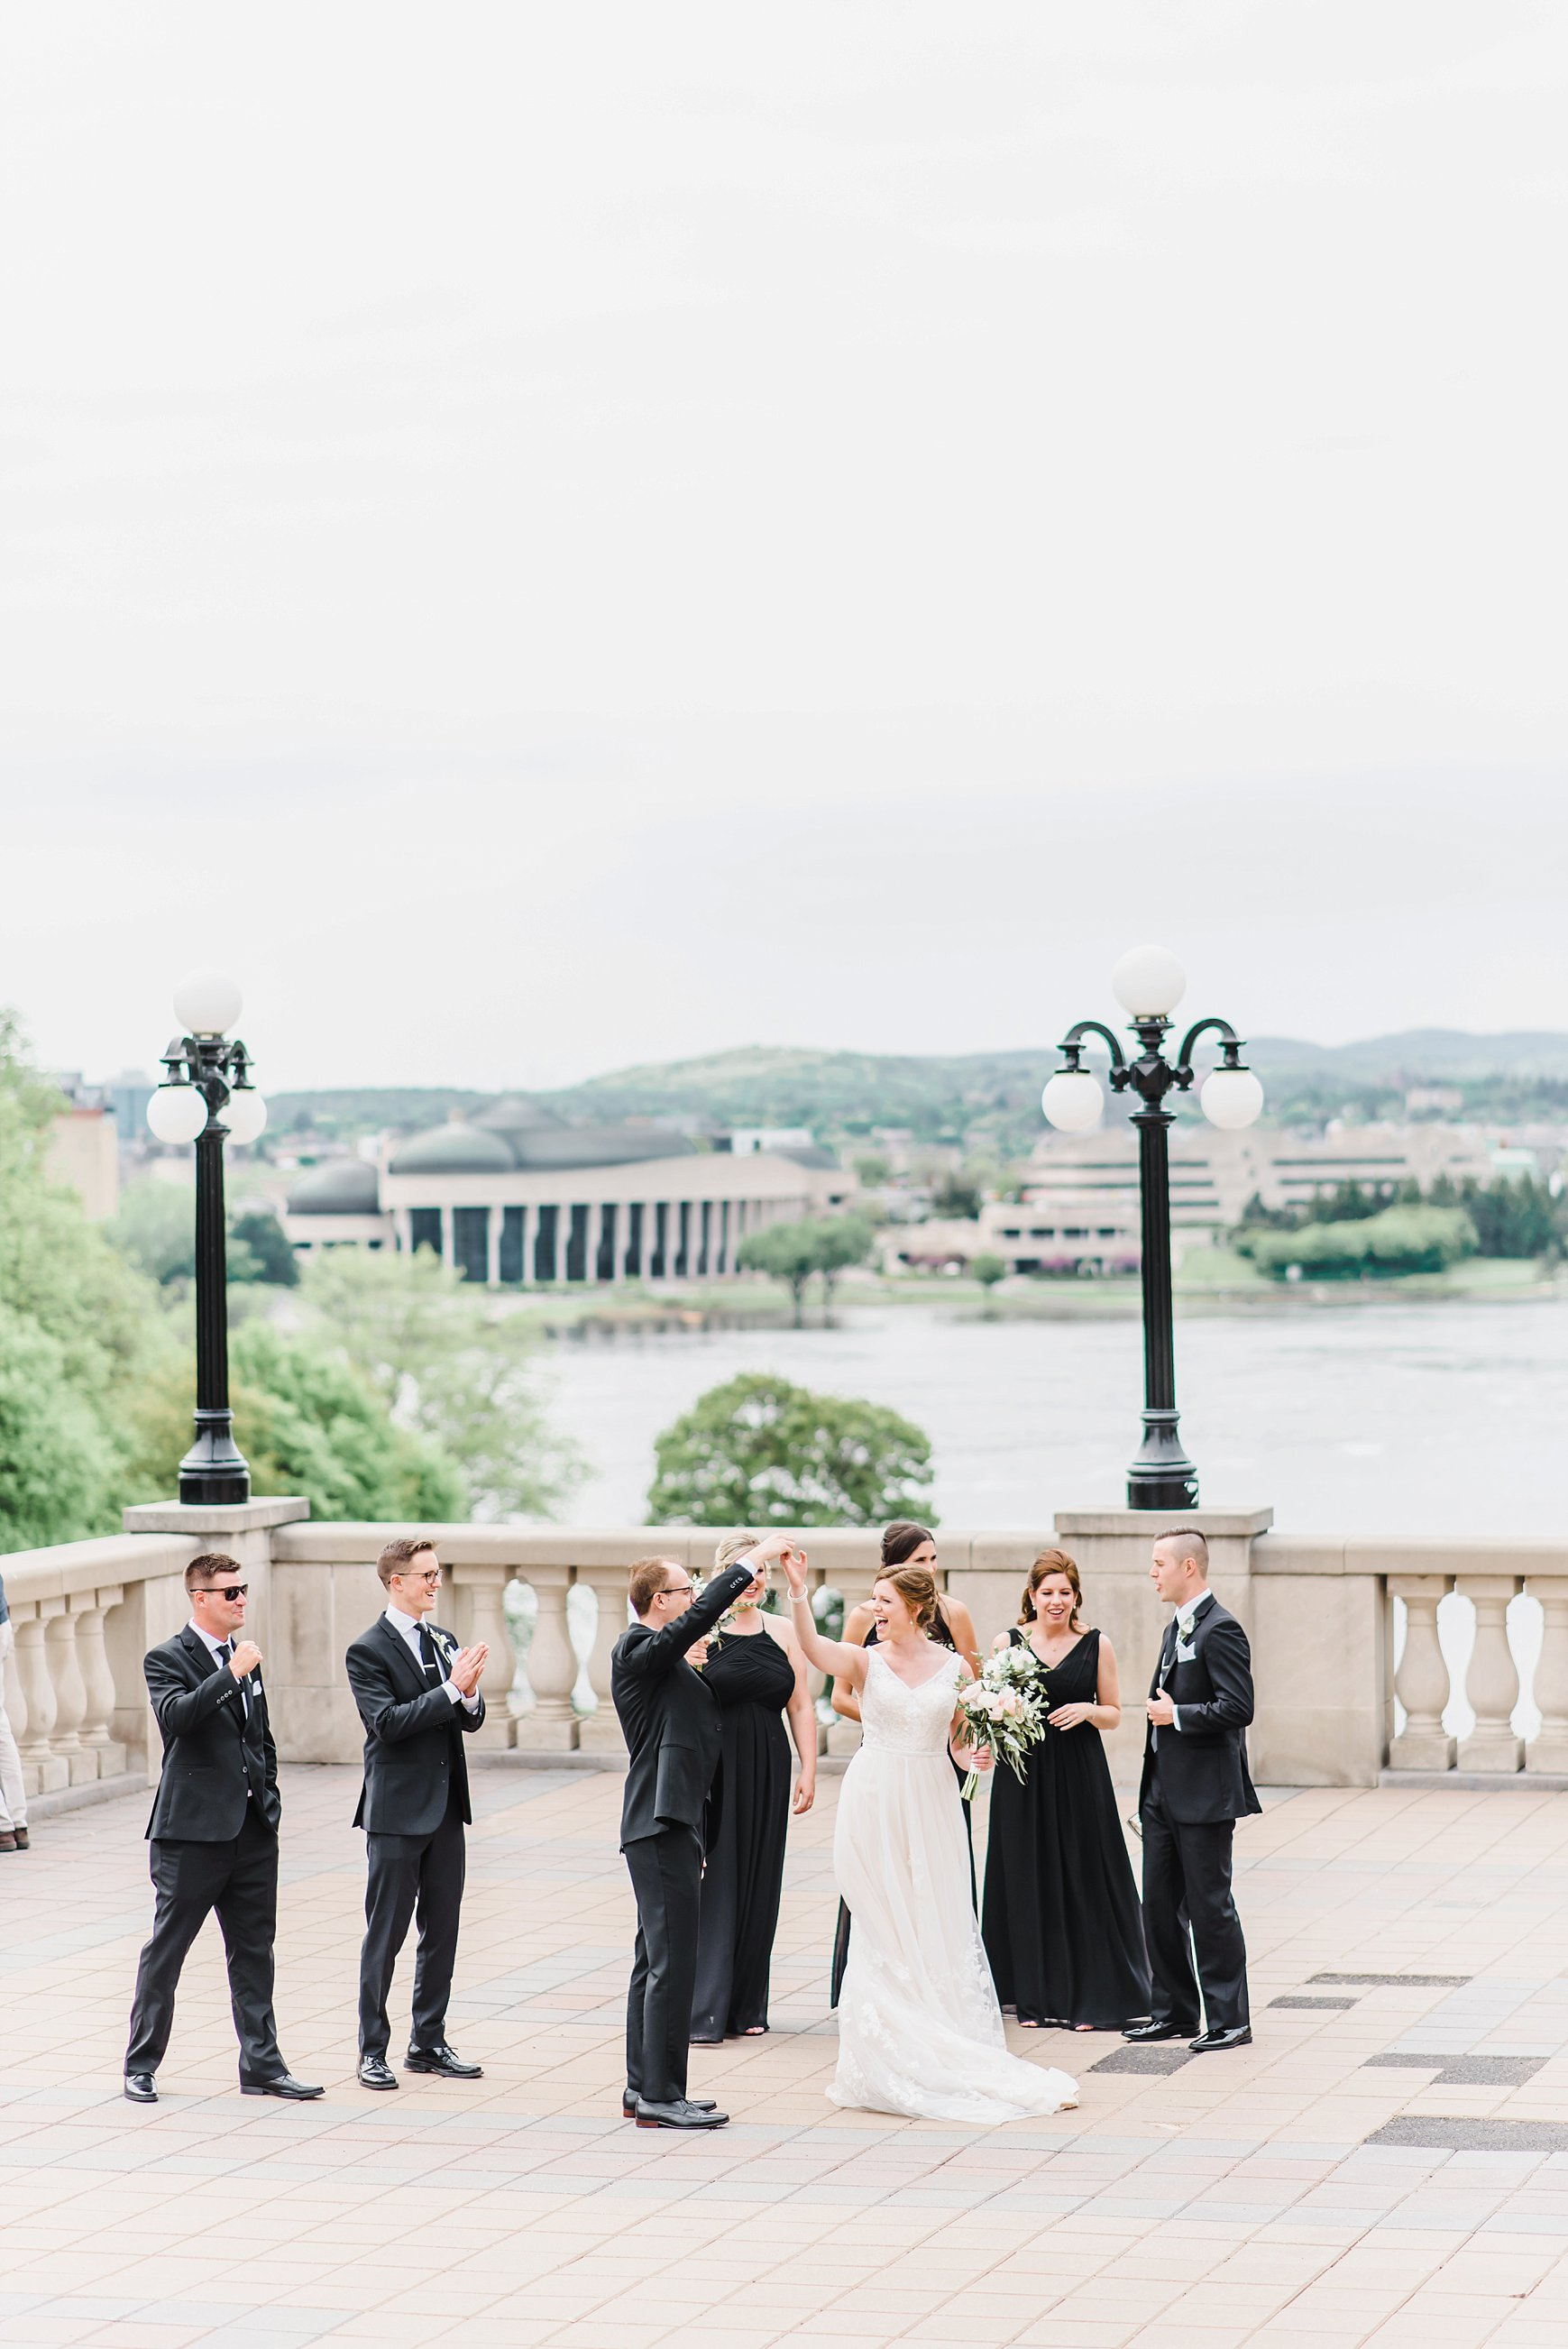 light airy indie fine art ottawa wedding photographer | Ali and Batoul Photography_0367.jpg